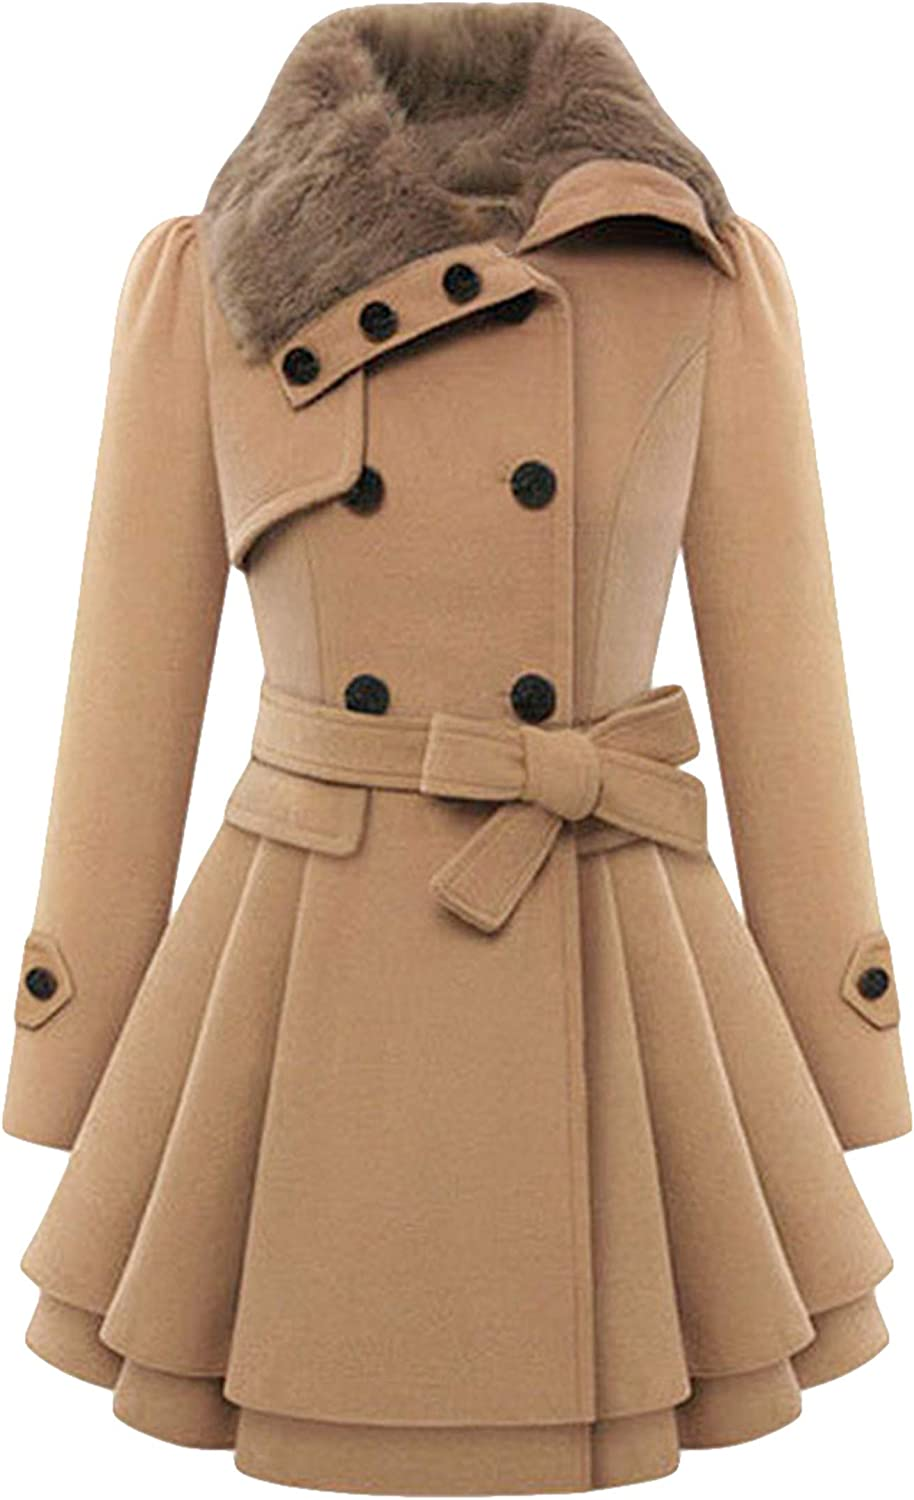 TYQQU Women's Lapel Collar Double-Breasted Hooded Pea Coat Plaid Belted Jackets with Pockets